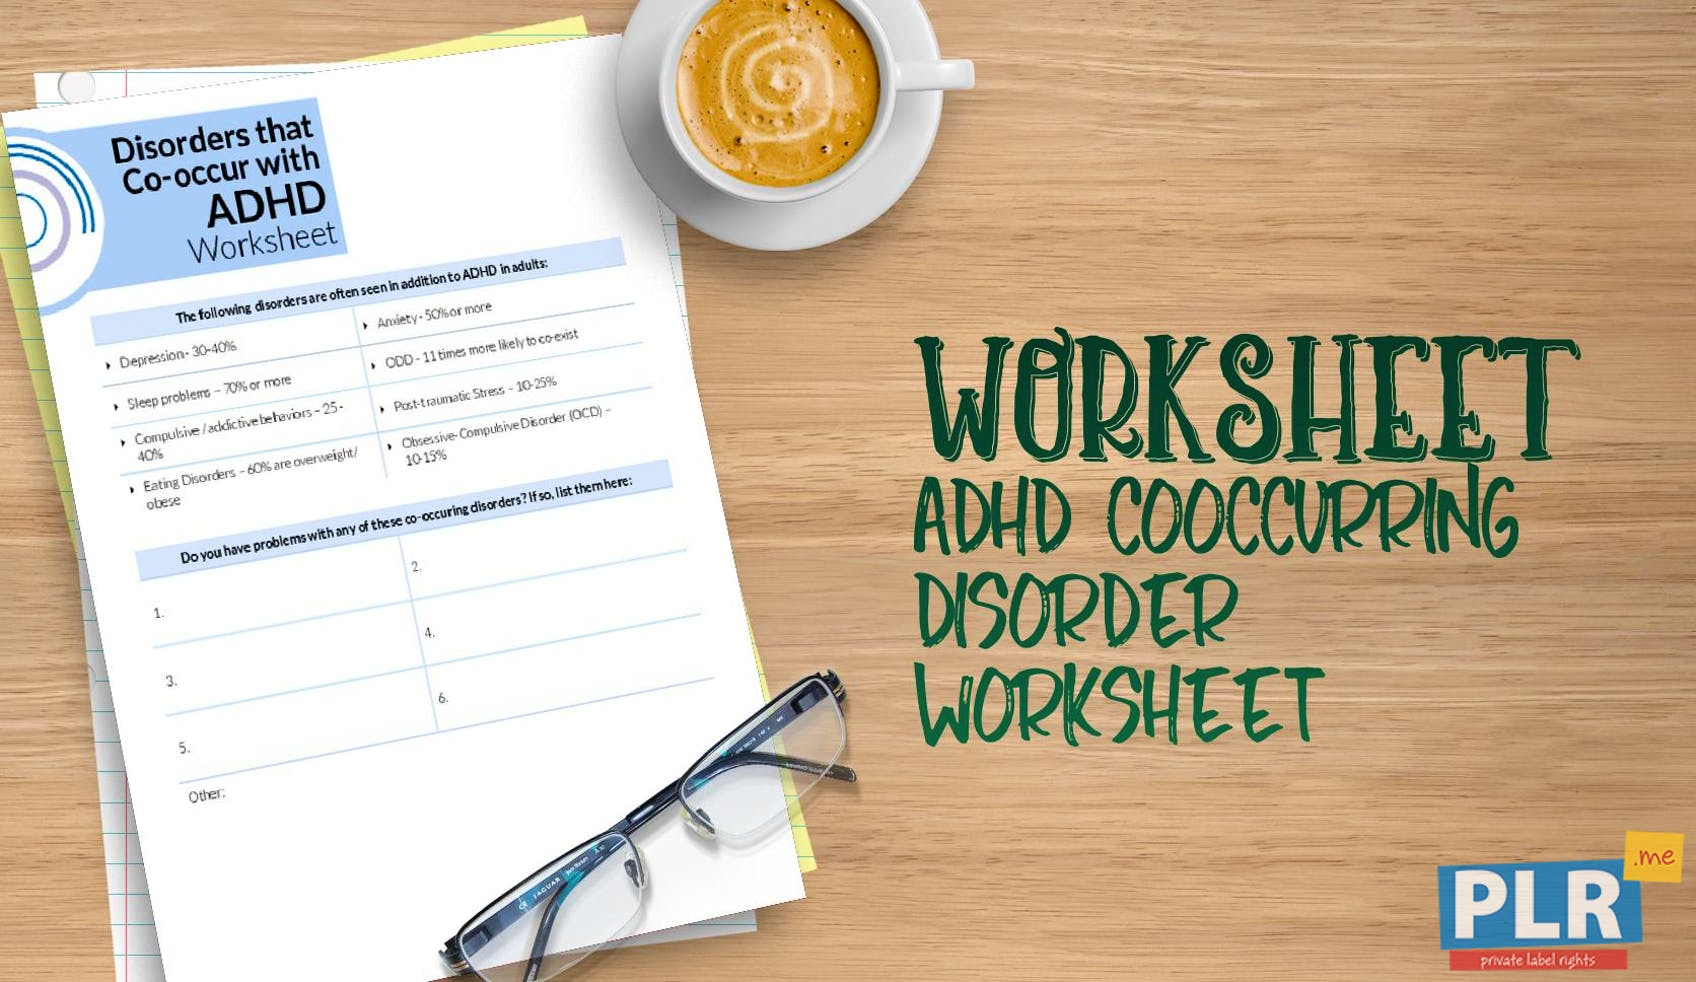 ADHD Cooccurring Disorder Worksheet